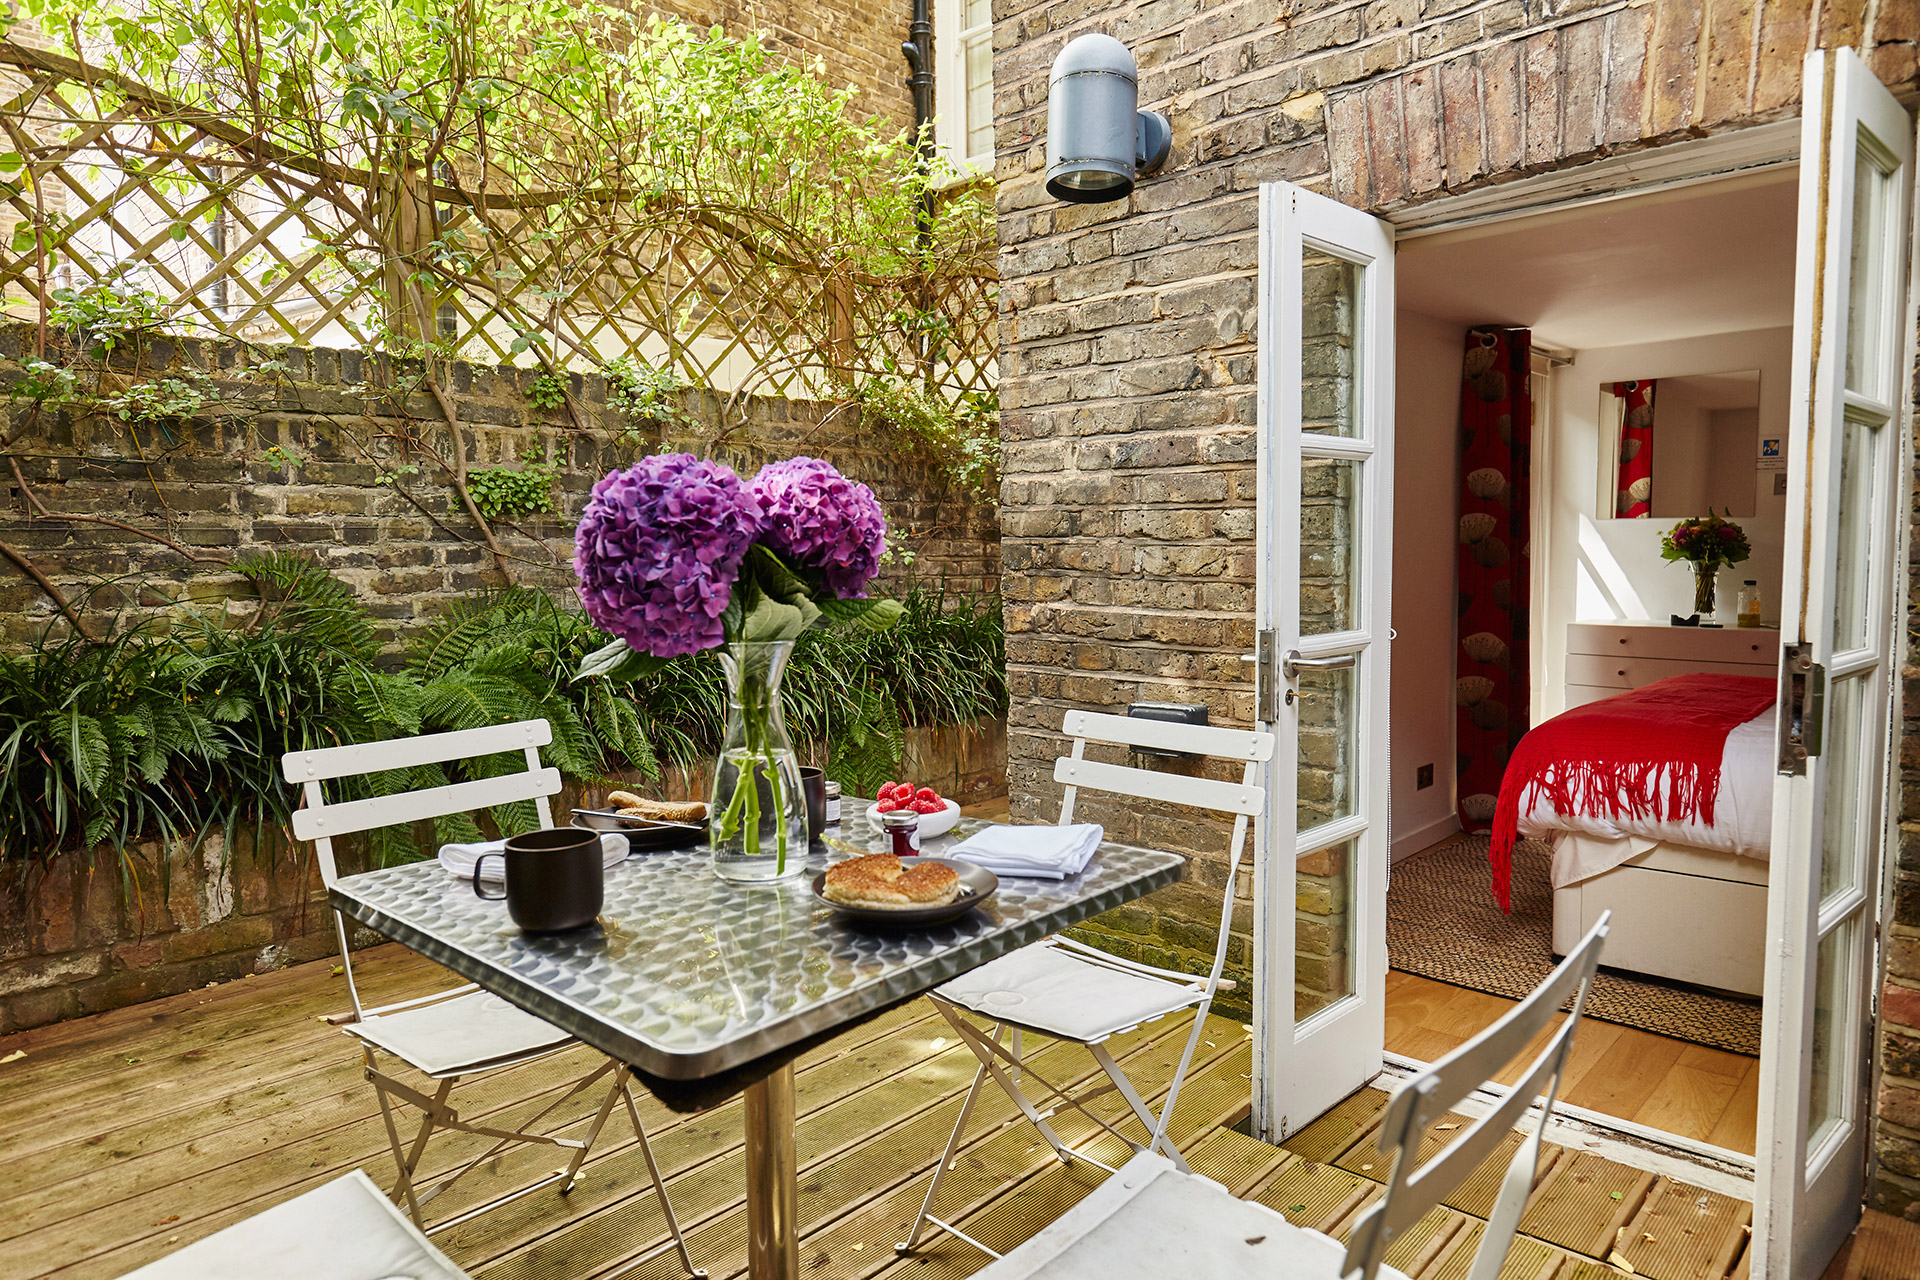 Beautiful Vacation Rental With Patio In Exclusive Chelsea London - Excellent-3-bedroom-london-apartment-in-chelsea-area